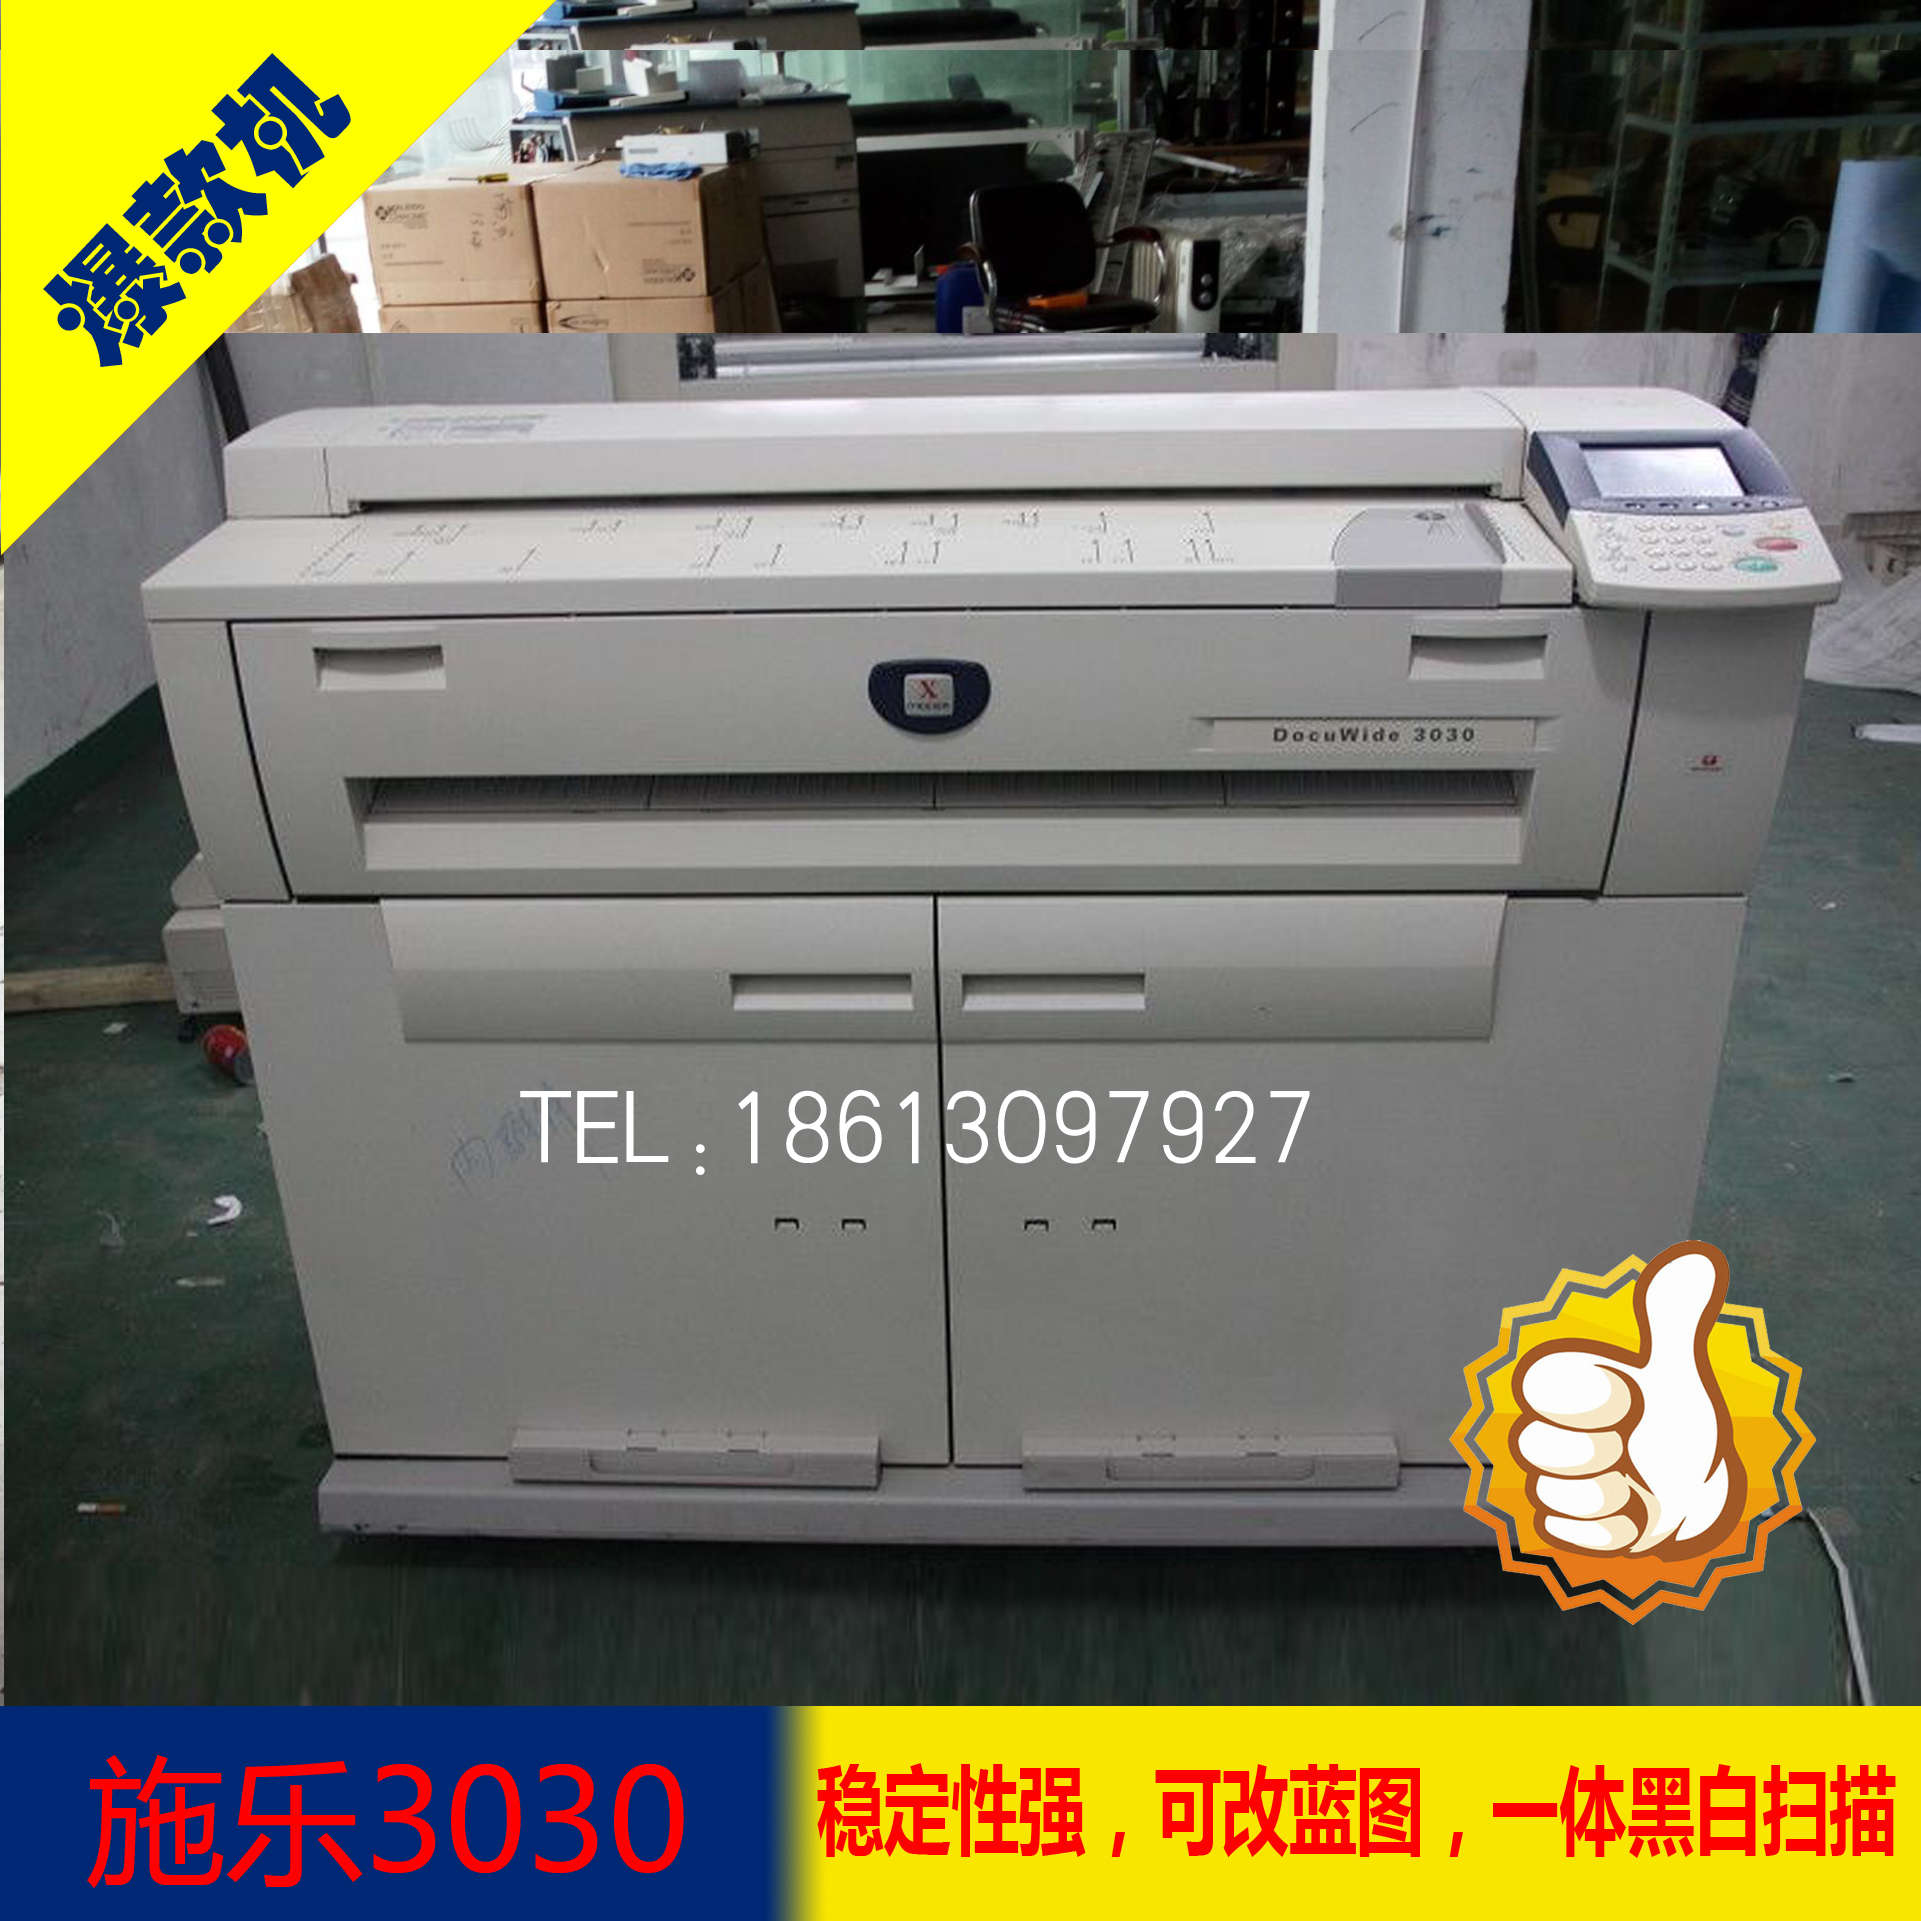 Tracing paper building a large figure printer dw6204 laser a0 tracing paper building a large figure printer dw6204 laser blueprint machine xerox 3030 engineering copier malvernweather